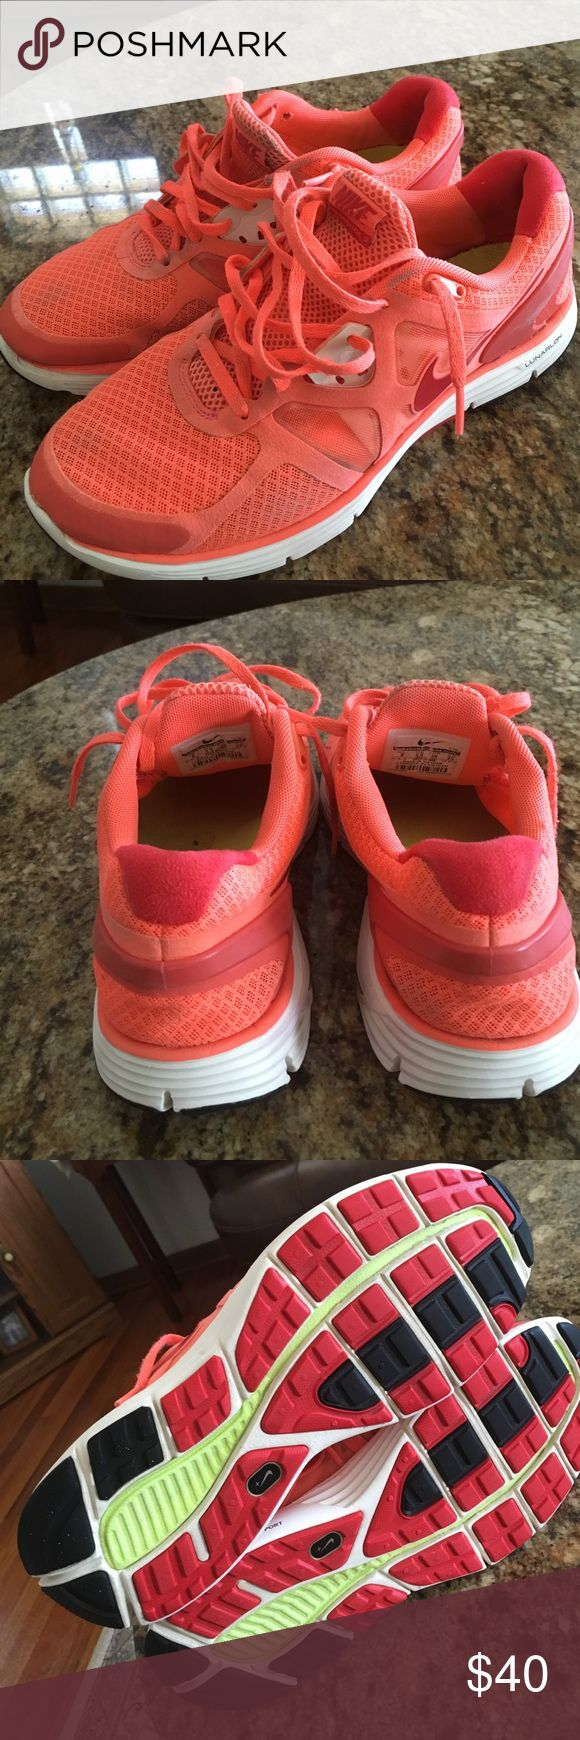 Ike lunar glide 3 cute running shoes That shoes was used but still in good condition Nike Shoes Athletic Shoes